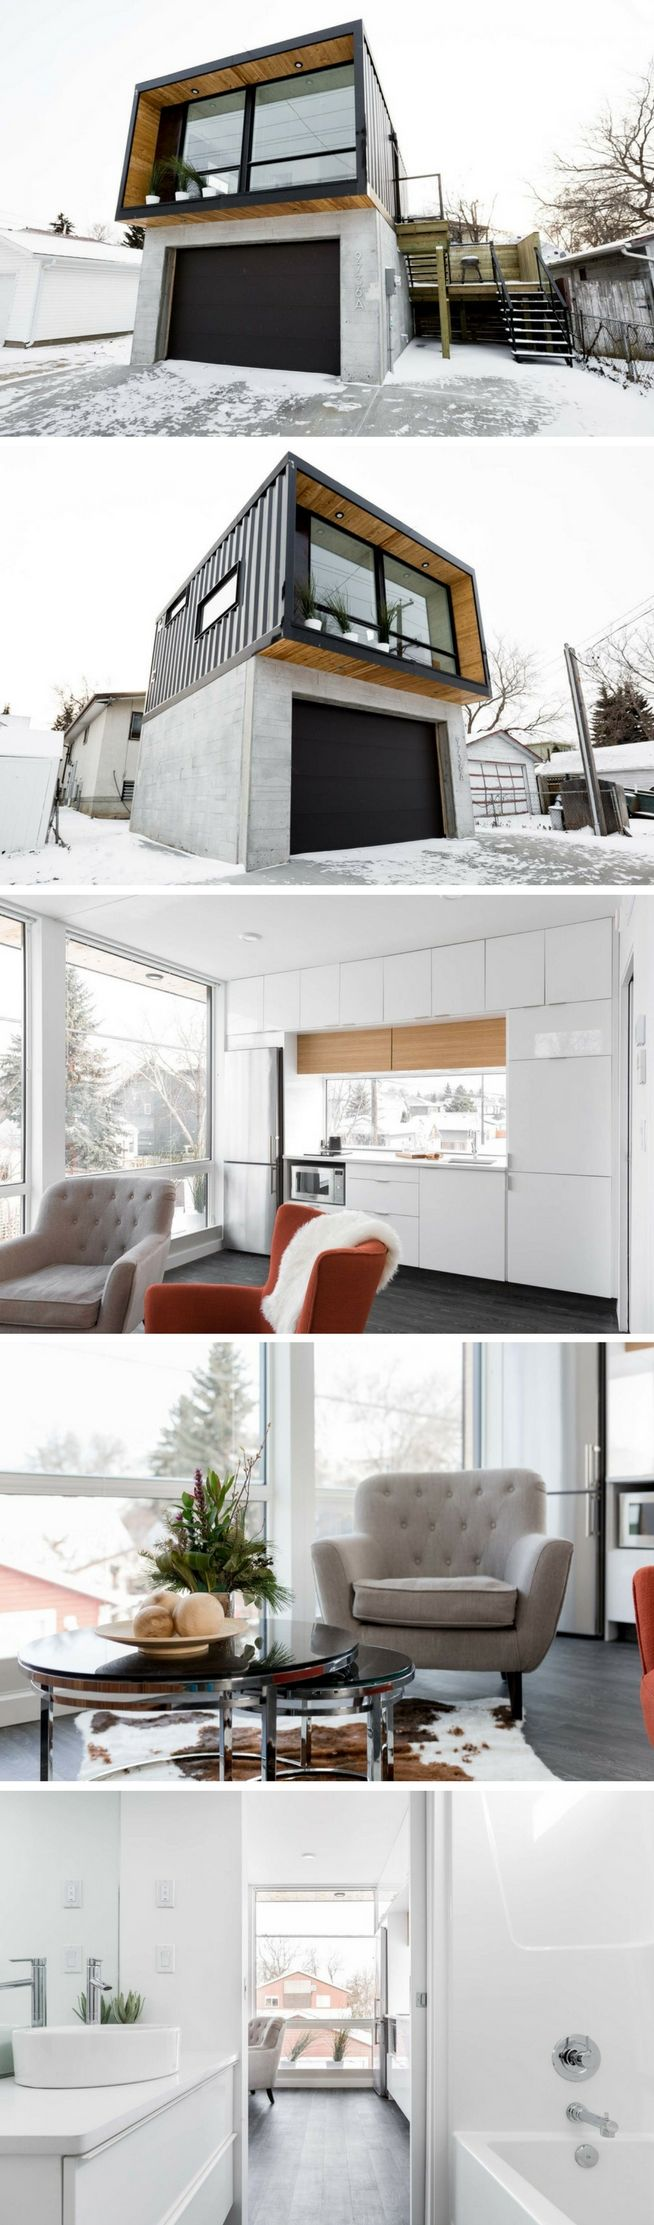 HO2 Tiny Shipping Container House | arq | Pinterest | Beautiful ...